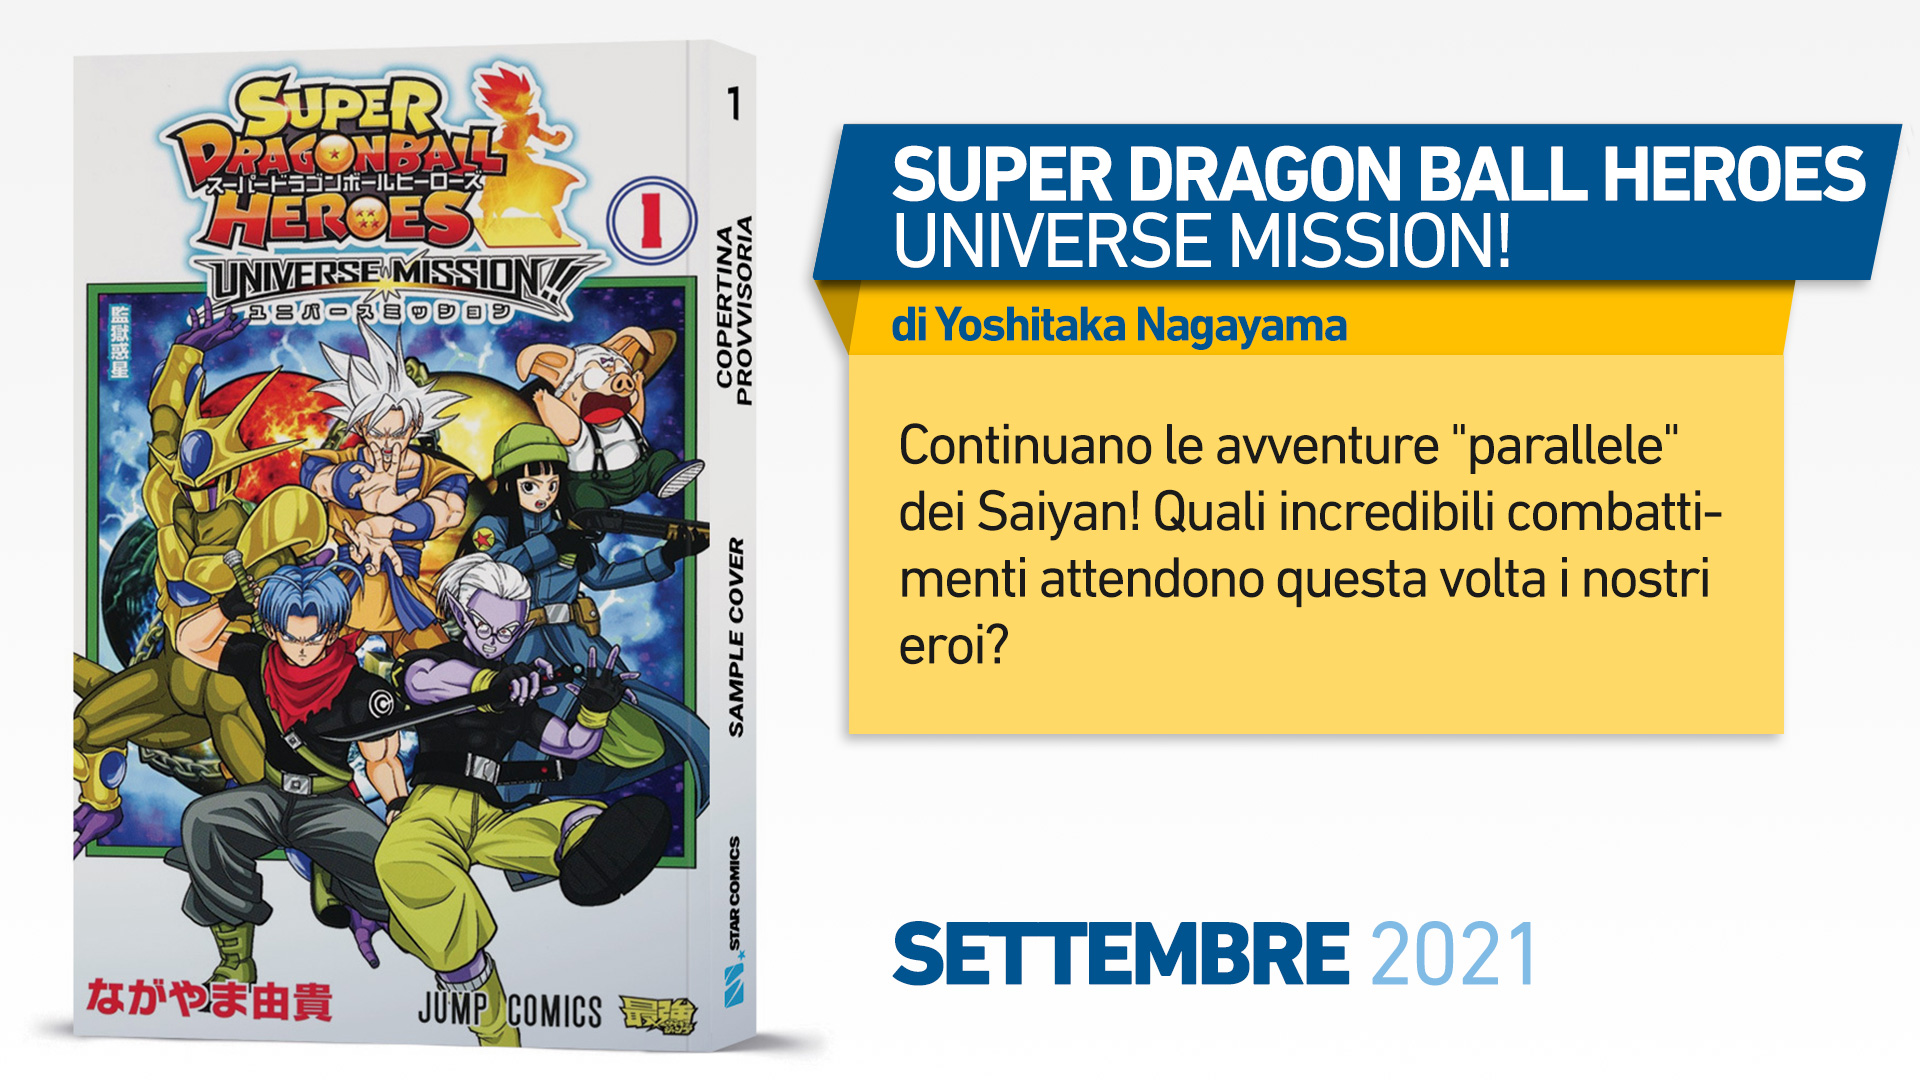 SUPER DRAGON BALL HEROES - UNIVERSE MISSION!